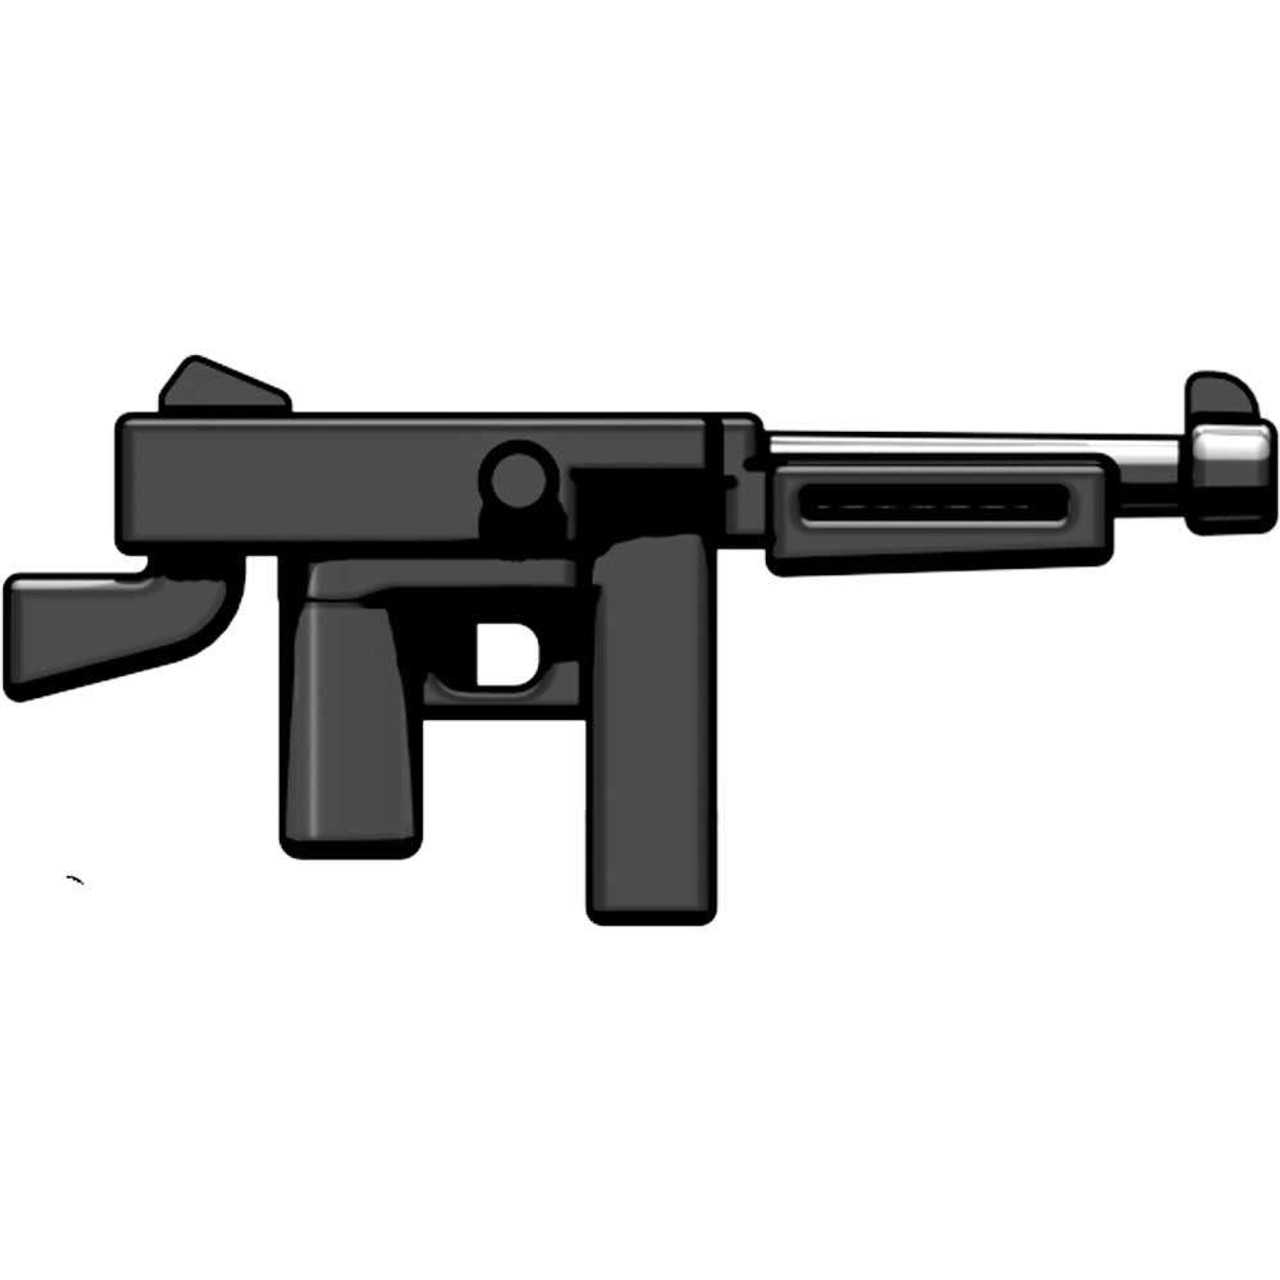 BrickArms Weapons M1A1 .45 Caliber SMG 2.5-Inch [Black]